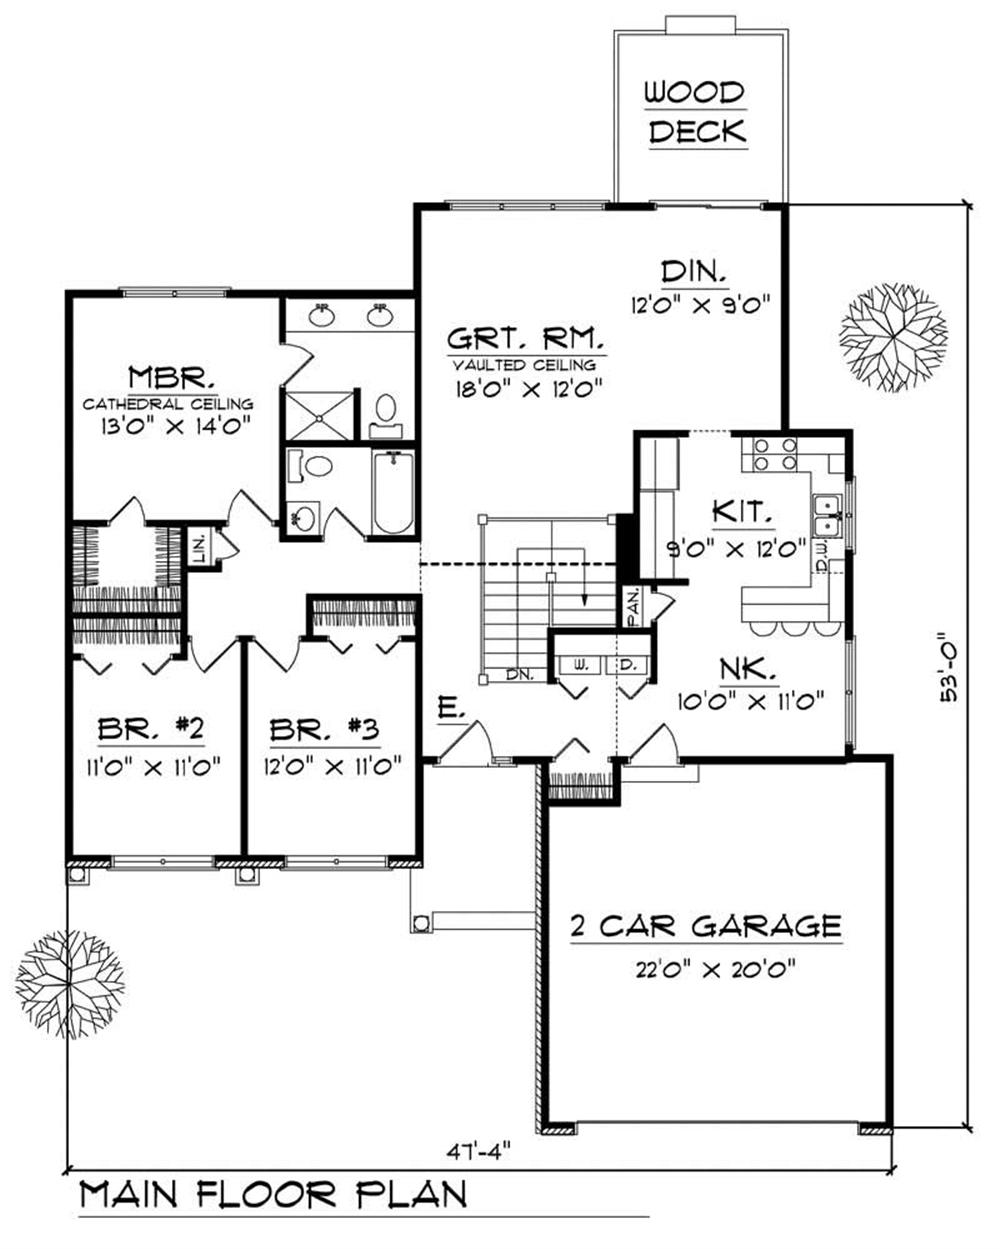 House Design 101: Large Images For House Plan 101-1830